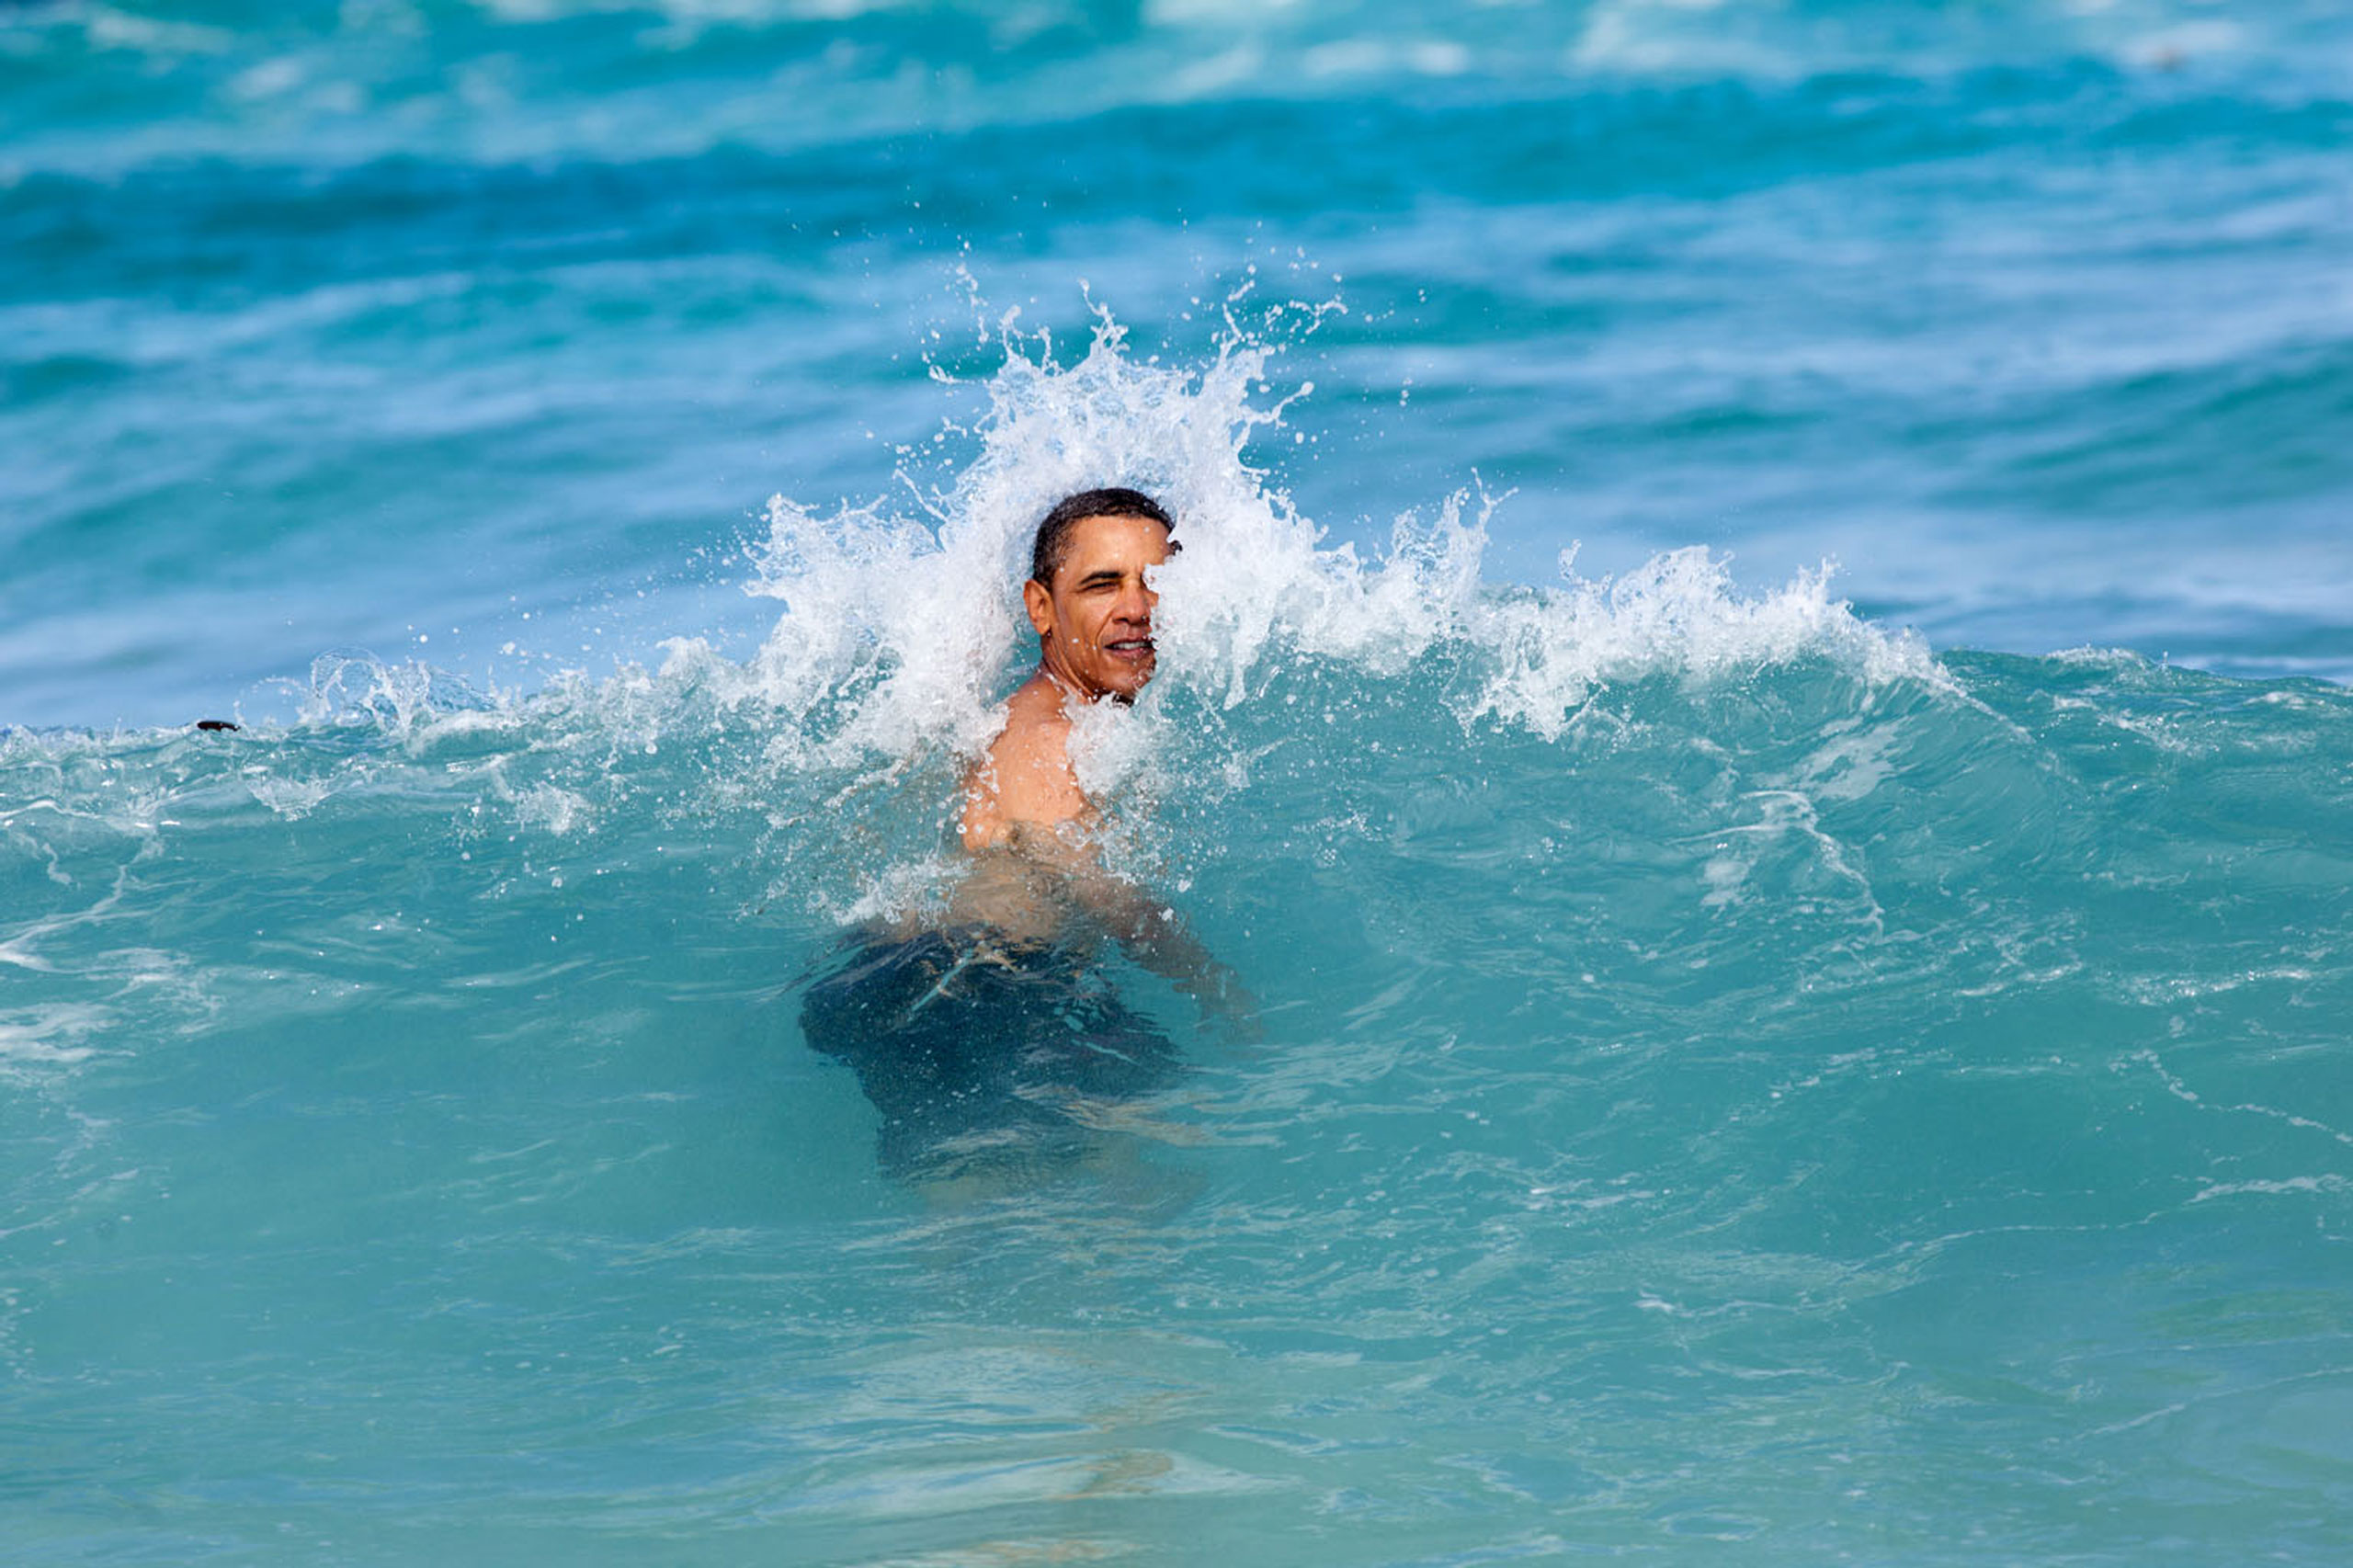 A nice way to celebrate the New Year for the President was to jump in the ocean in his native state of Hawaii. He was on his annual Christmas vacation with family and friends, and went swimming at Pyramid Rock Beach in Kaneohe Bay,  Jan. 1, 2012.